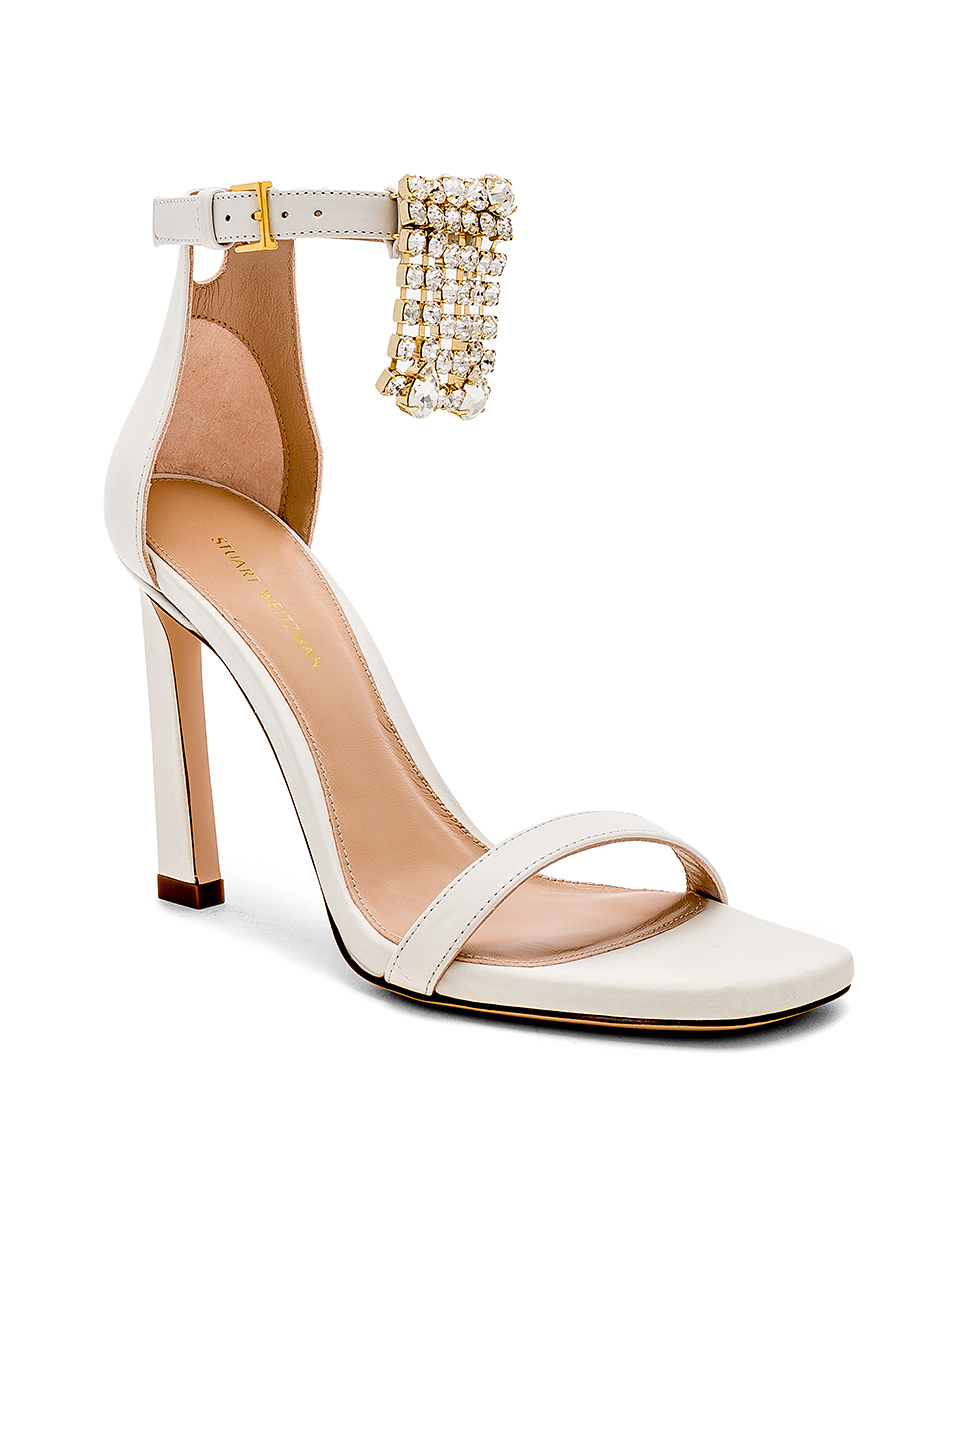 Stuart Weitzman Fringe Square Nudist Heel in Off White Cush Nappa